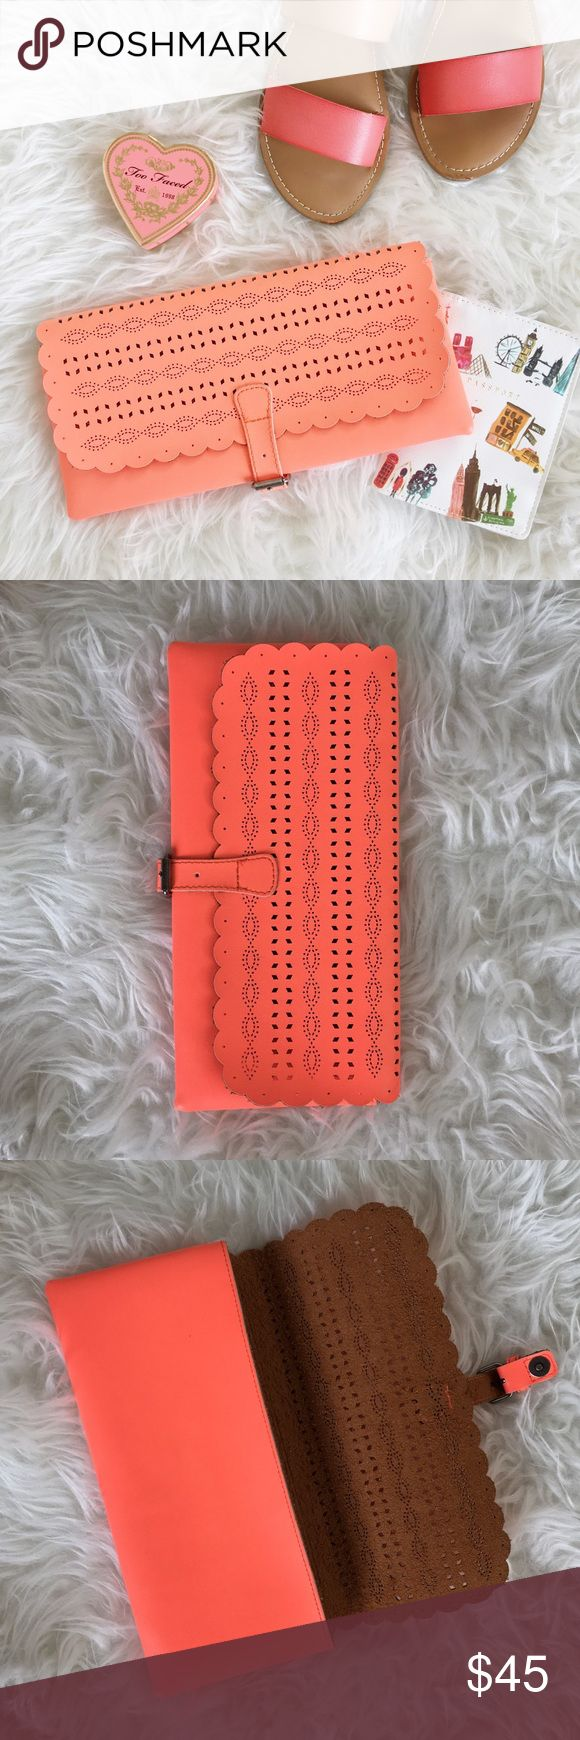 Selling this American Eagle Neon Coral Lazer Cutout Clutch on Poshmark! My username is: karendaugherty. #shopmycloset #poshmark #fashion #shopping #style #forsale #American Eagle Outfitters #Handbags